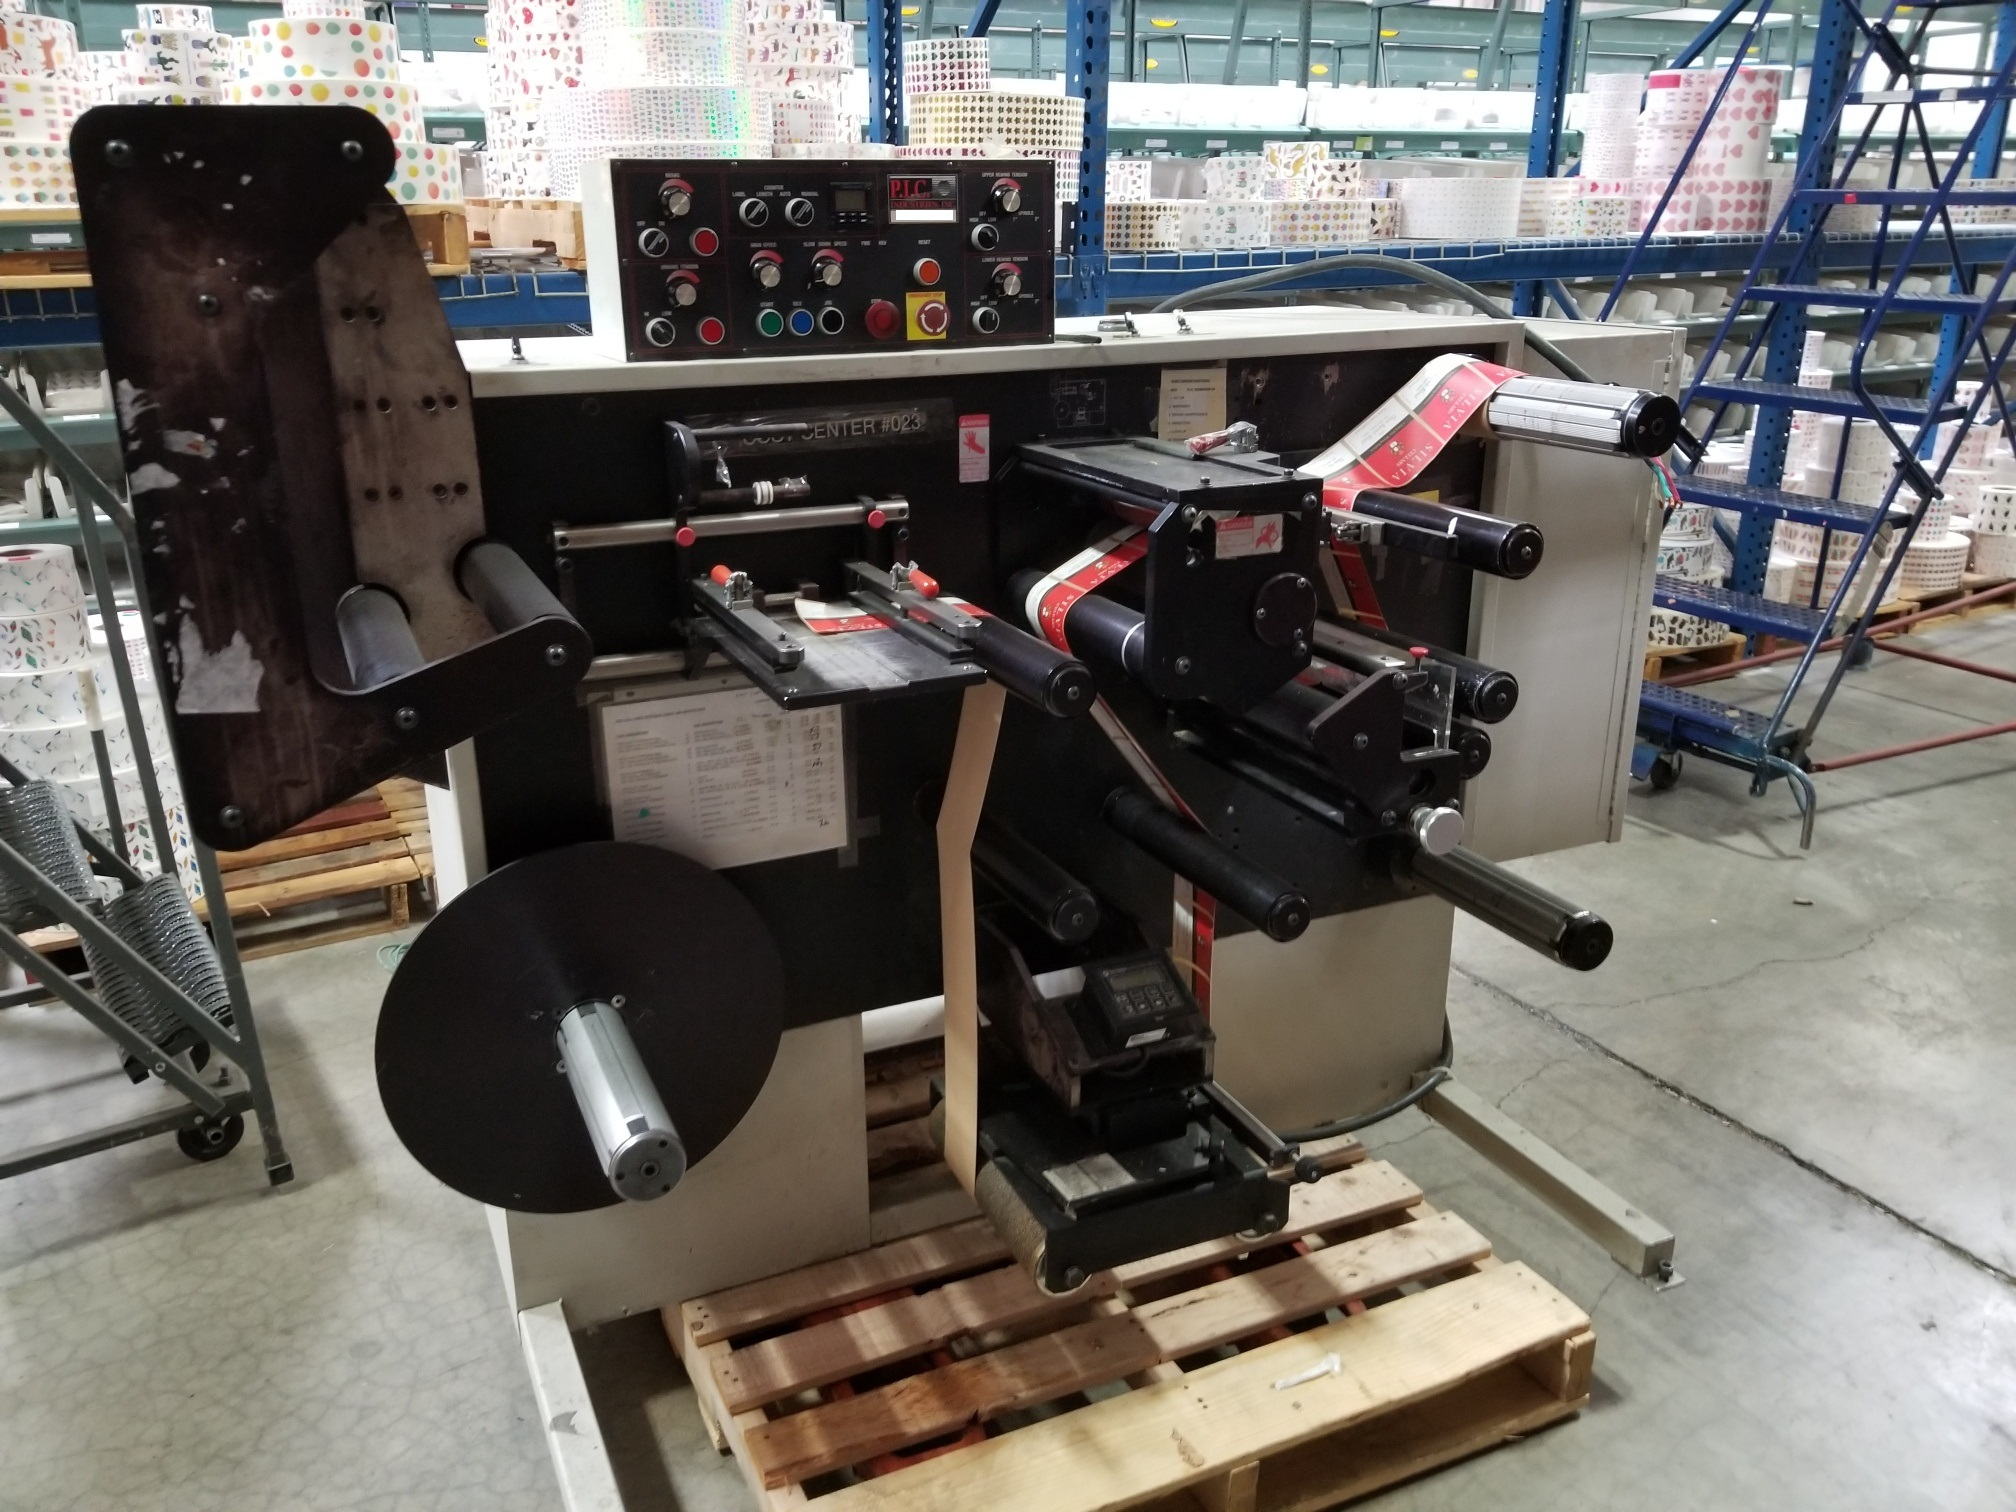 PIC Model 100 - Used Flexo Printing Presses and Used Flexographic Equipment-0